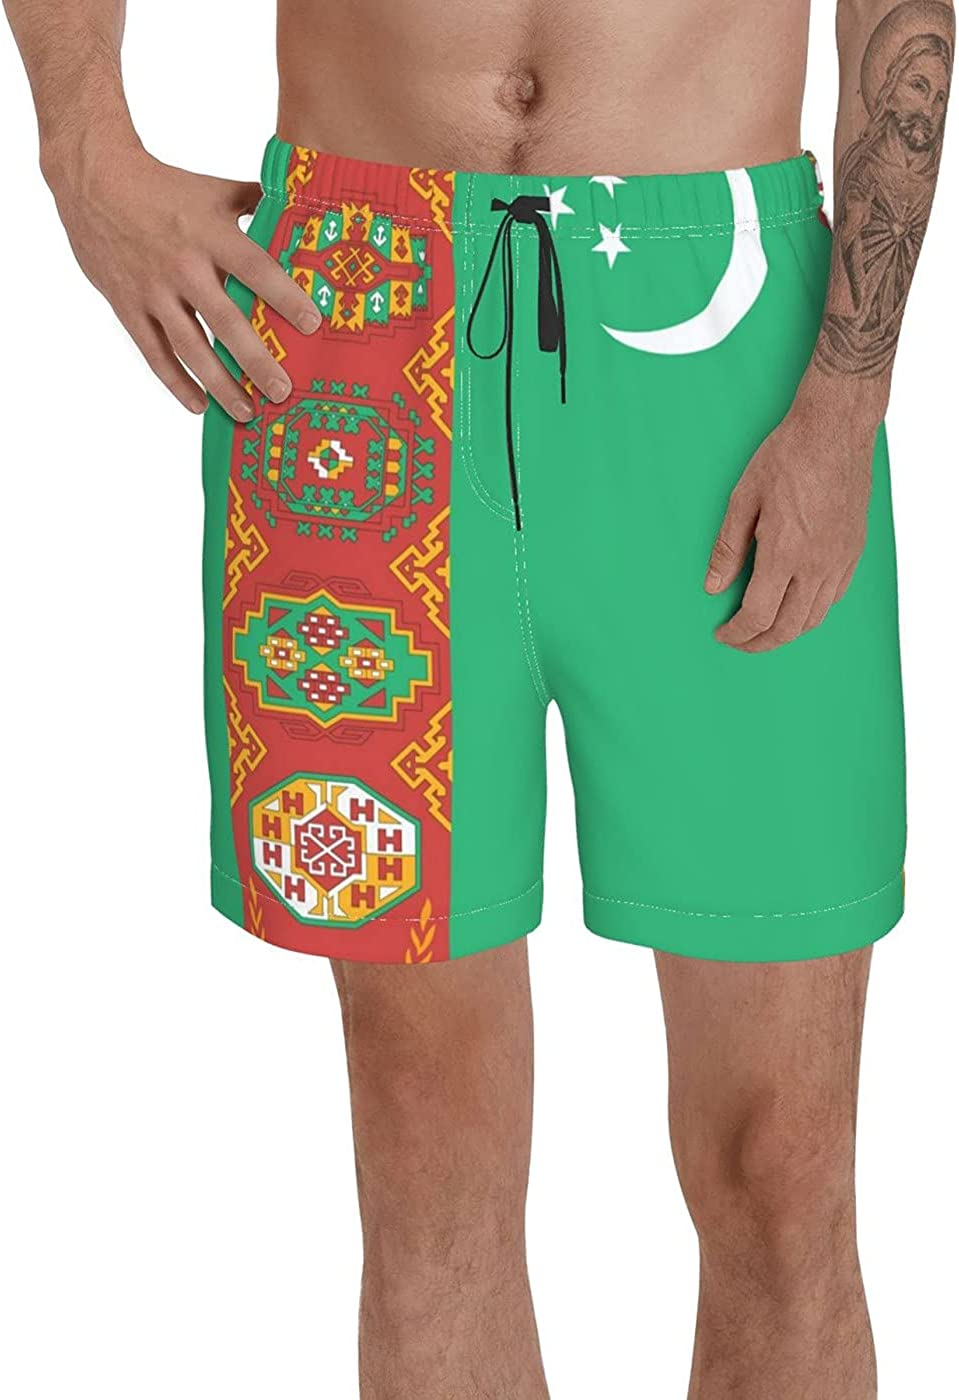 Count Turkmenistan Flag Men's 3D Printed Funny Summer Quick Dry Swim Short Board Shorts with